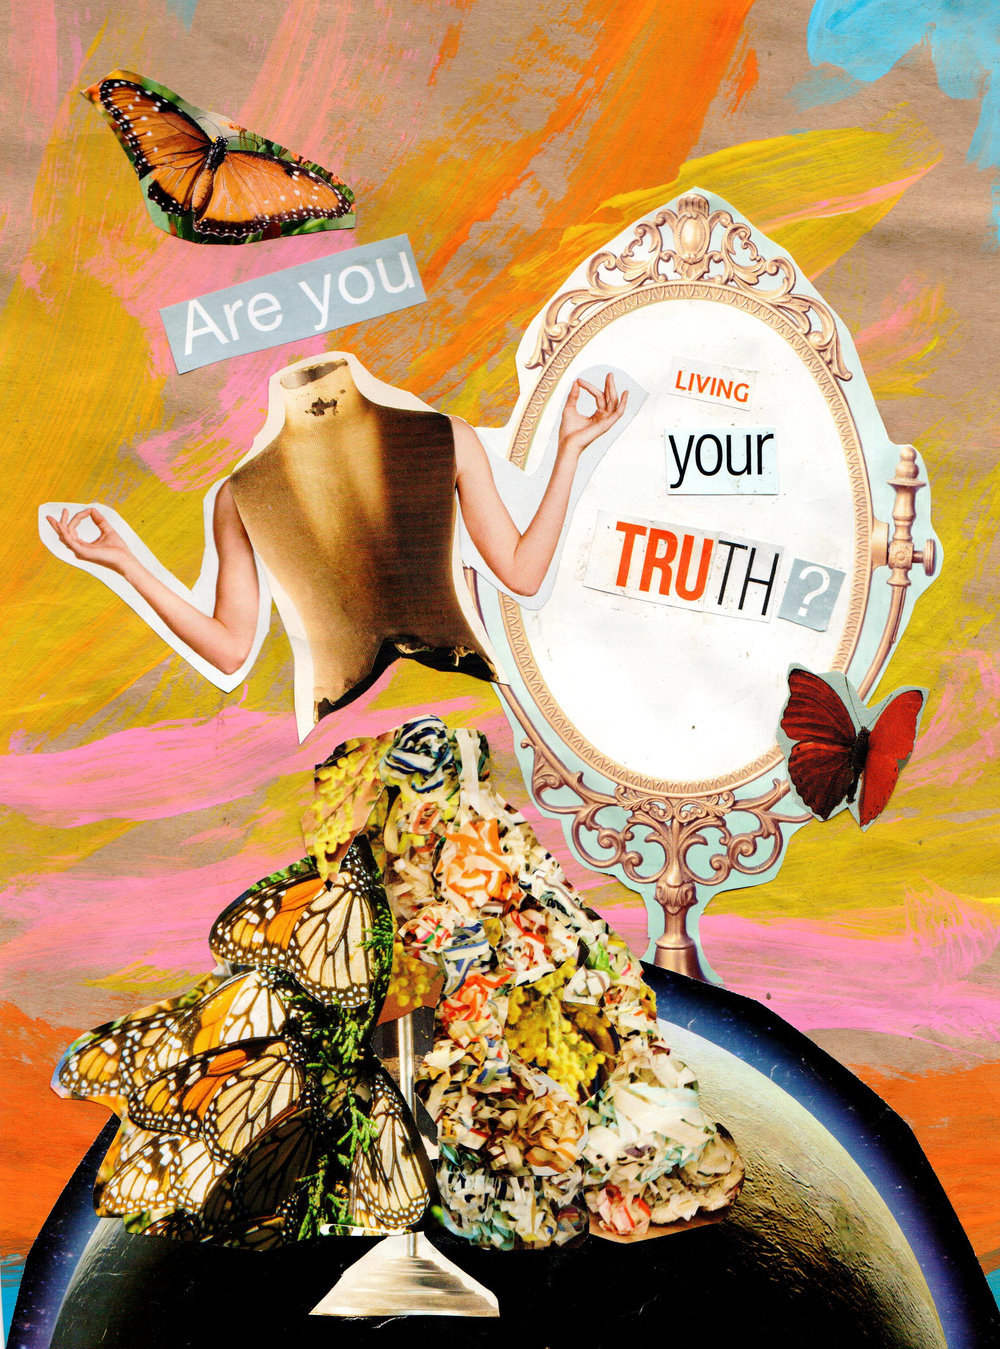 I like this artwork's metaphor of 'constructing truth', because it's….truthful. In our lives we piece together what we want to see; we edit out what we don't want to see, and we consistently construct false images of ourselves and the world around us.